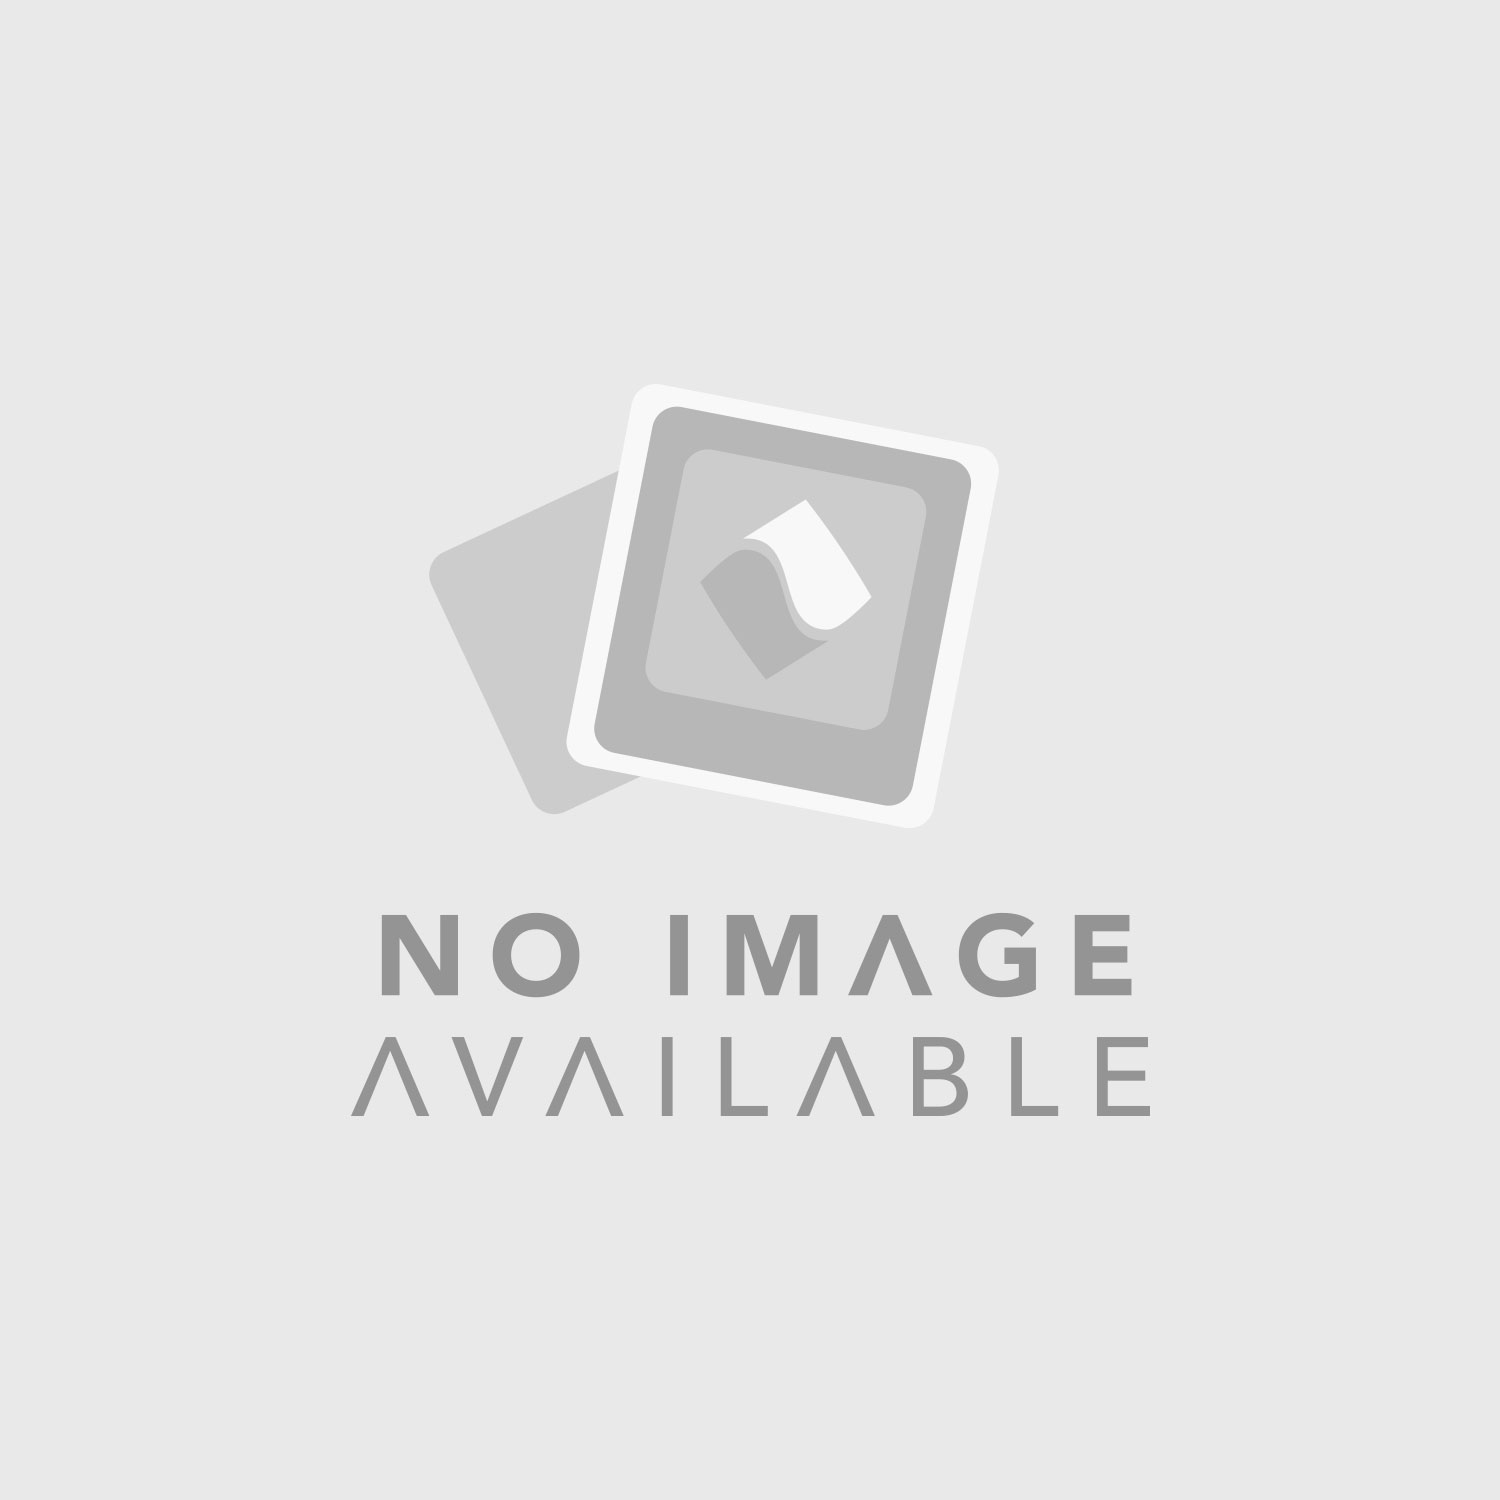 D'Addario EXL120 Electric Guitar Strings (9-42)